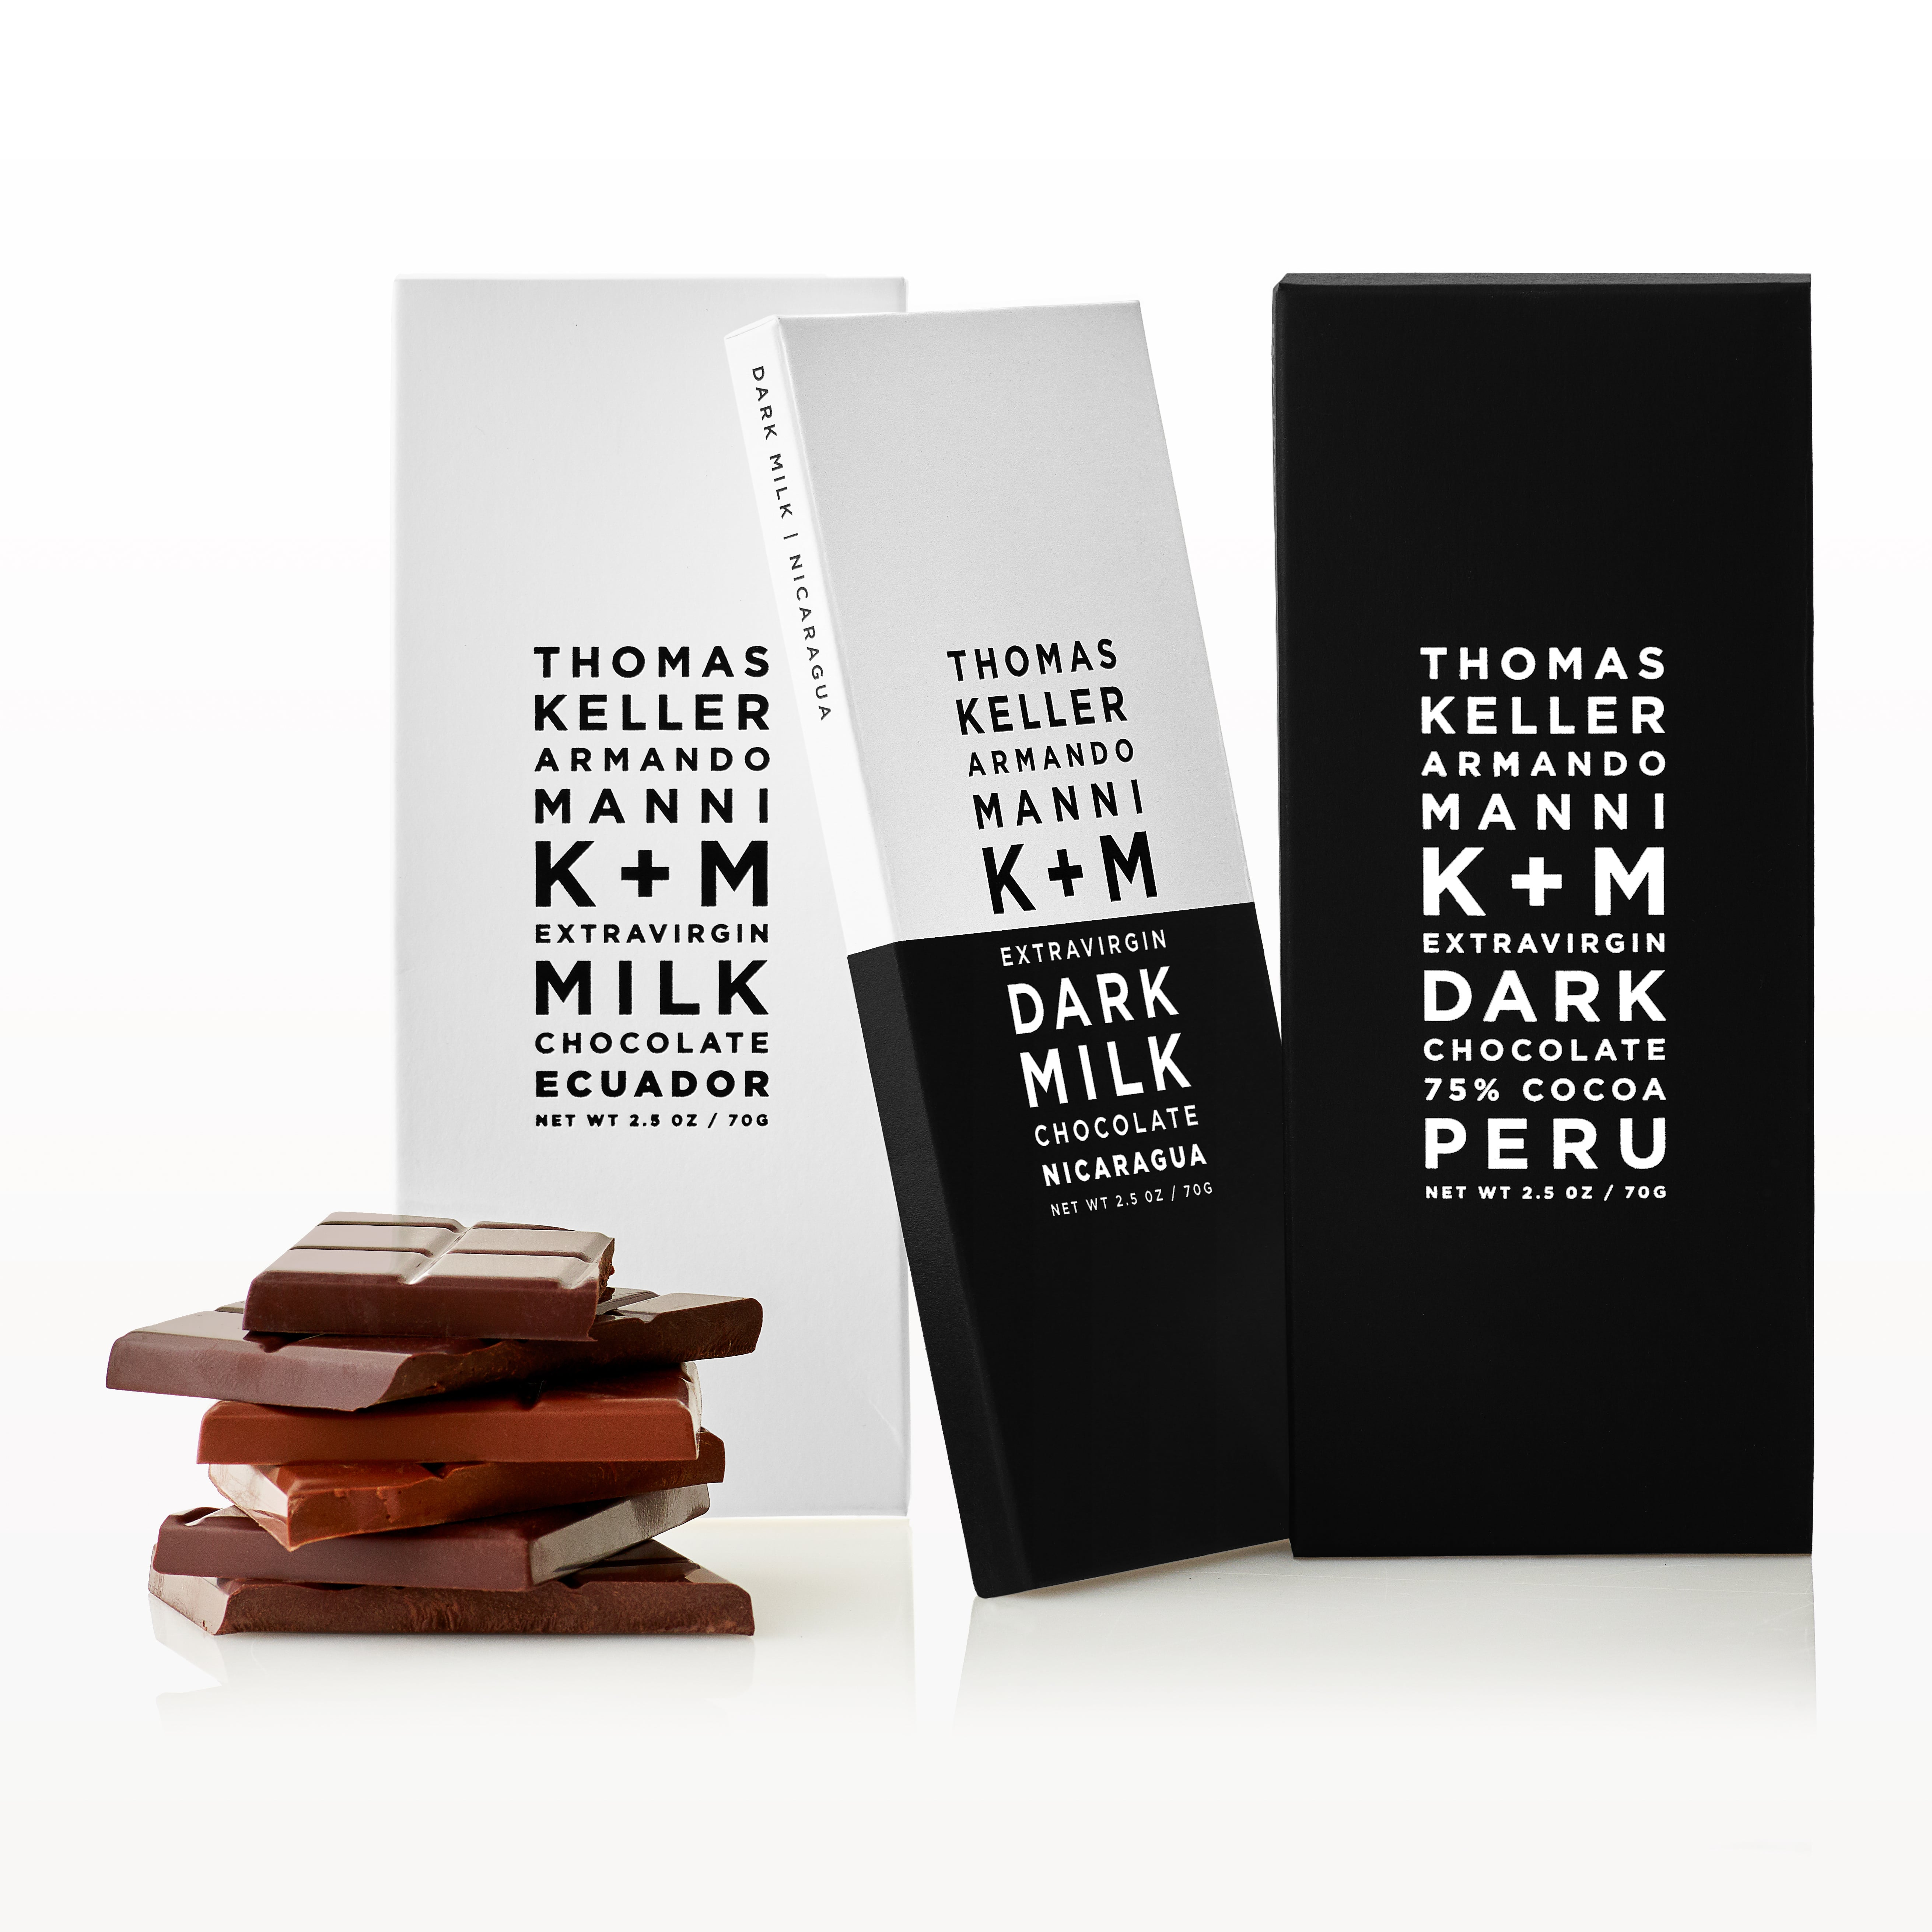 K+M Extravirgin 75% Dark Chocolate Ecuador Wins sofi Award